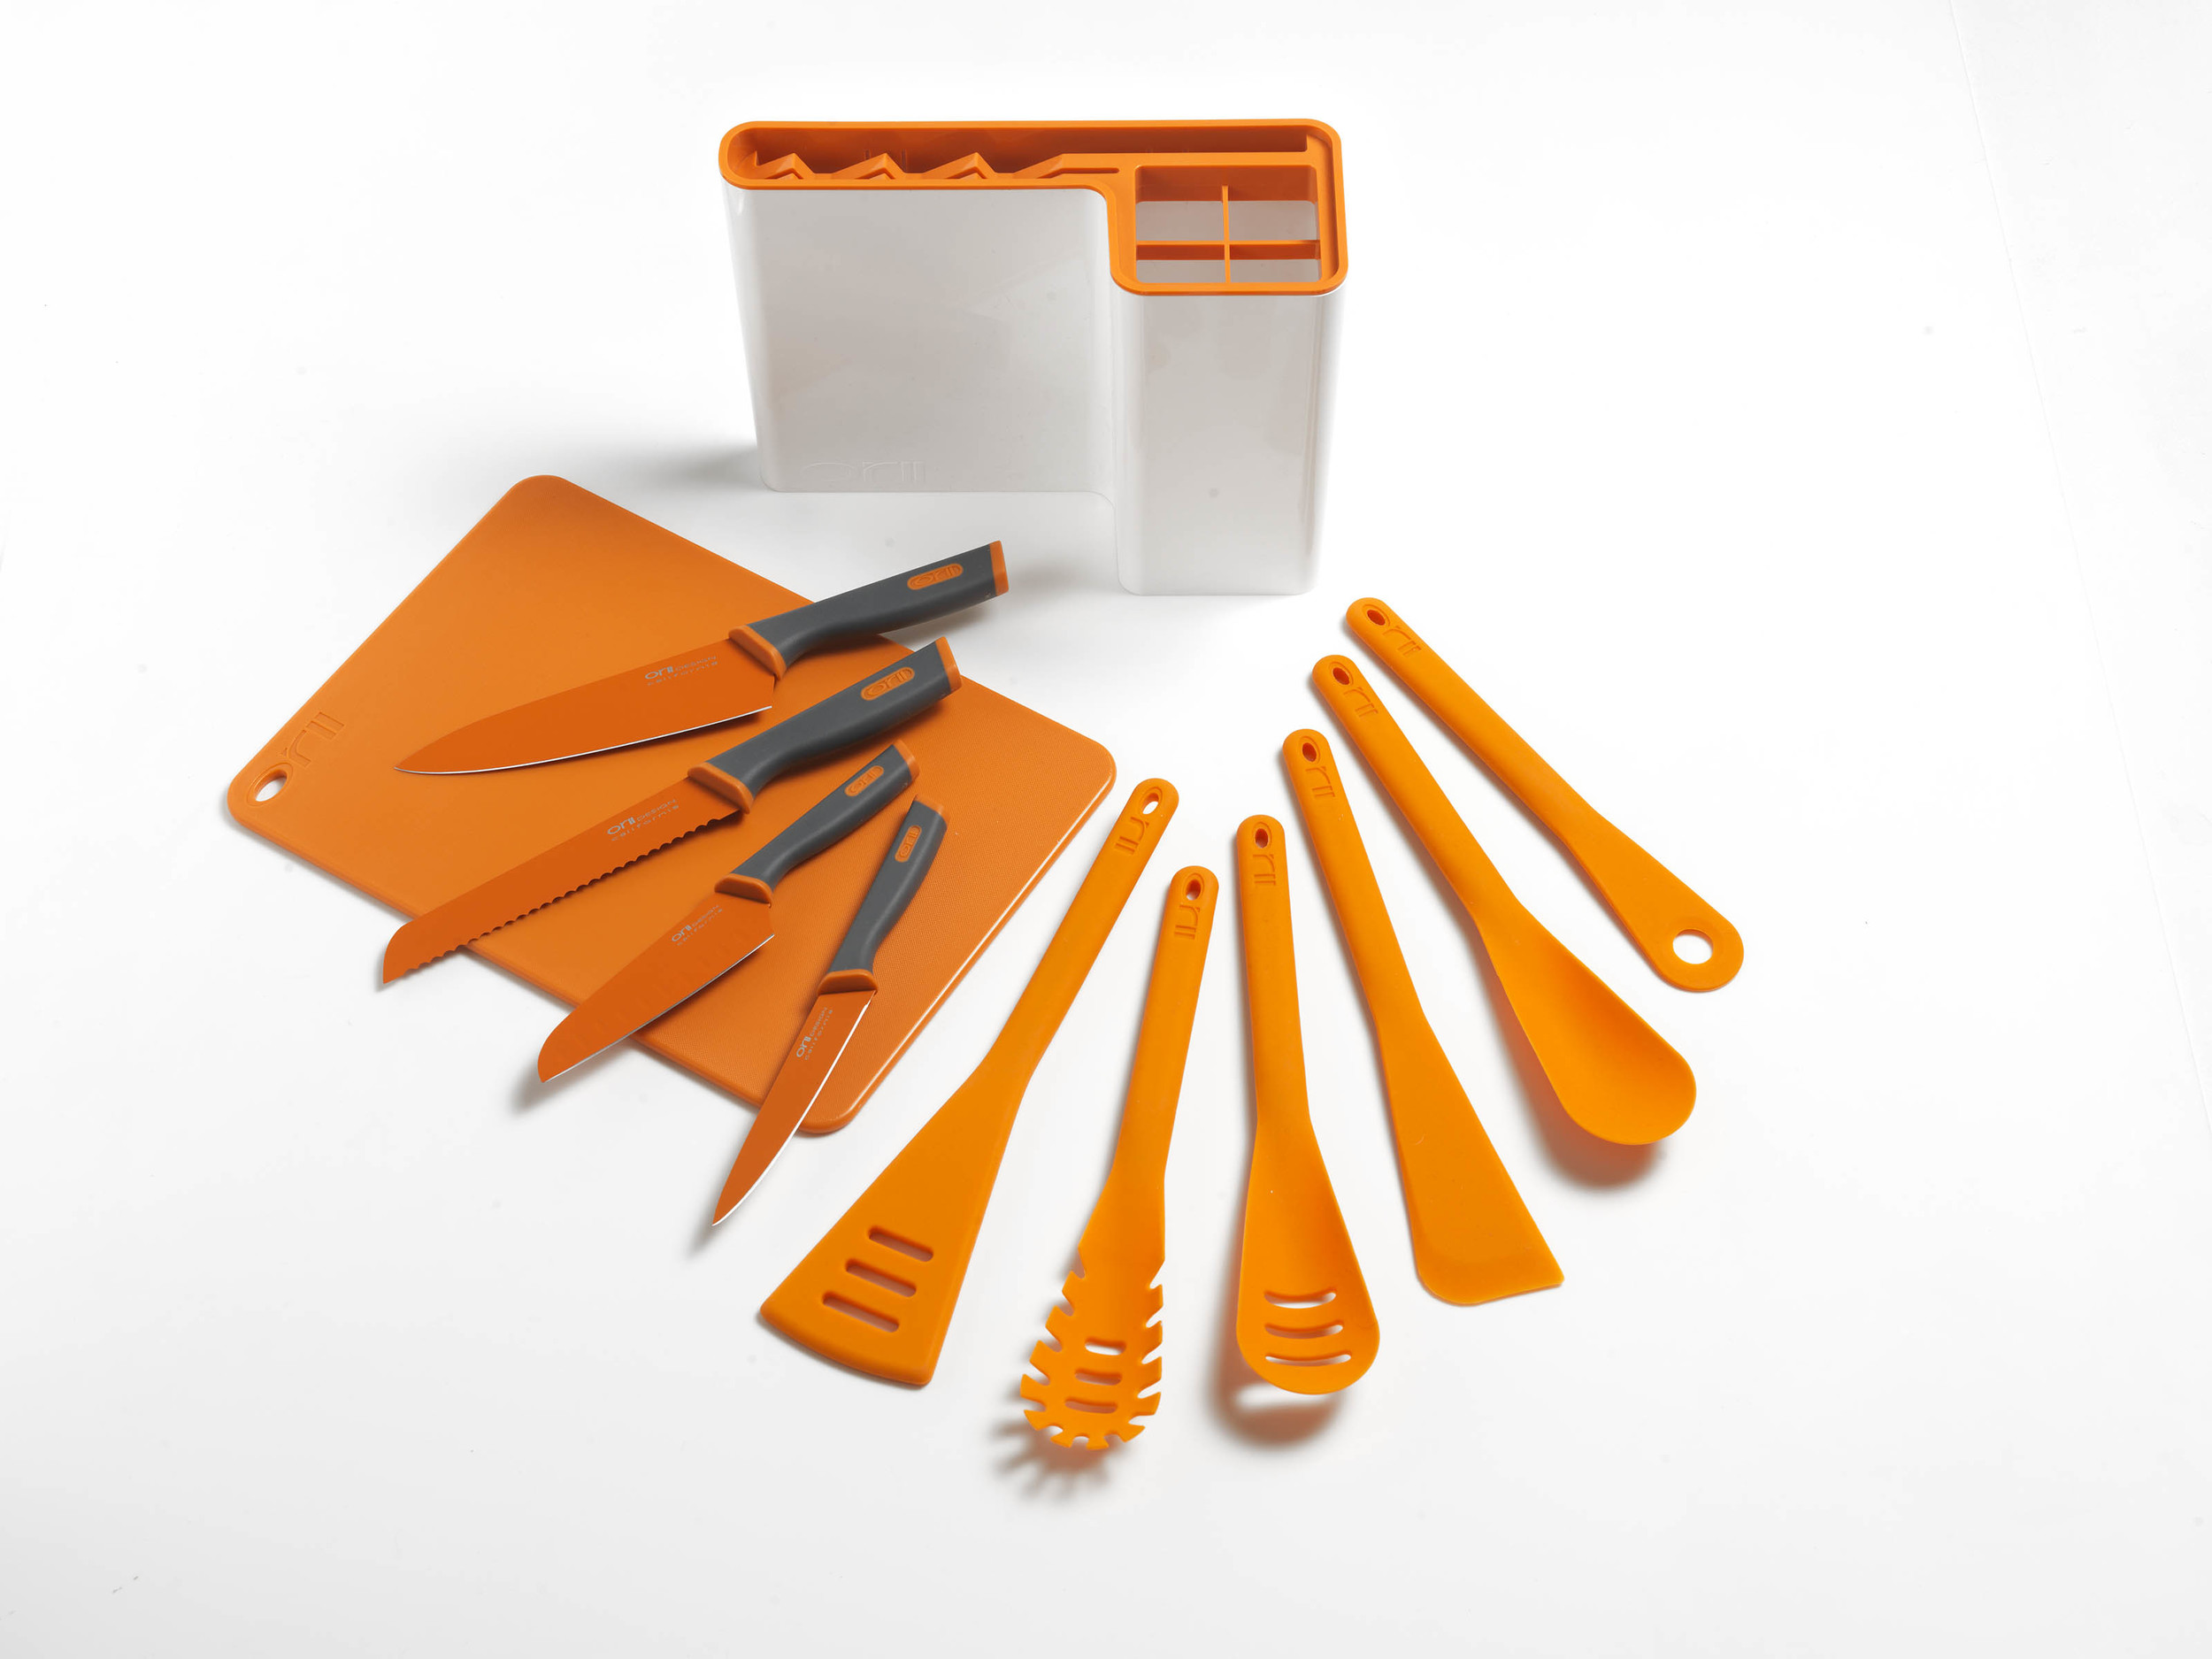 Orii 12PC MONO KITCHEN ORGANIZATION SET - LUMINOUS ORANGE                                                                   MODERN UTENSILS